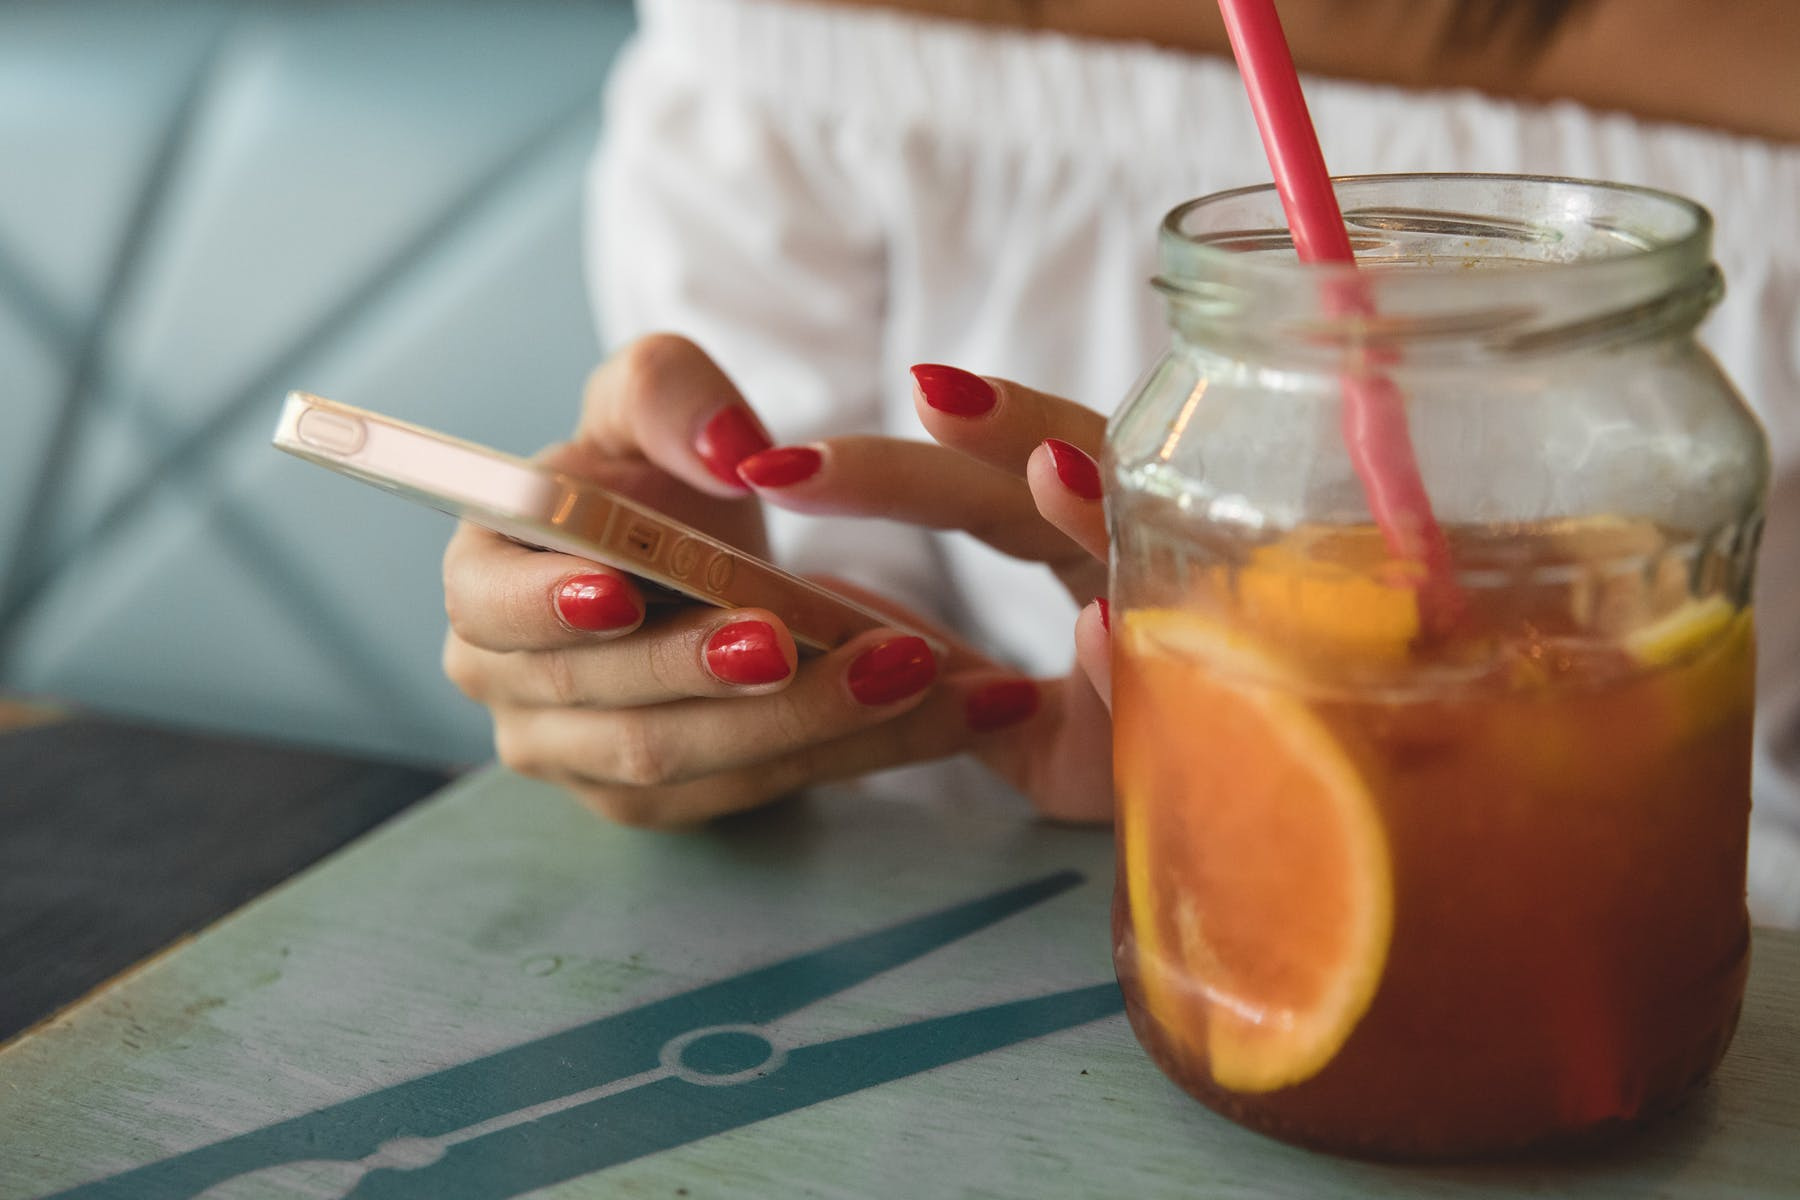 hand with cellphone next to a glass iced tea